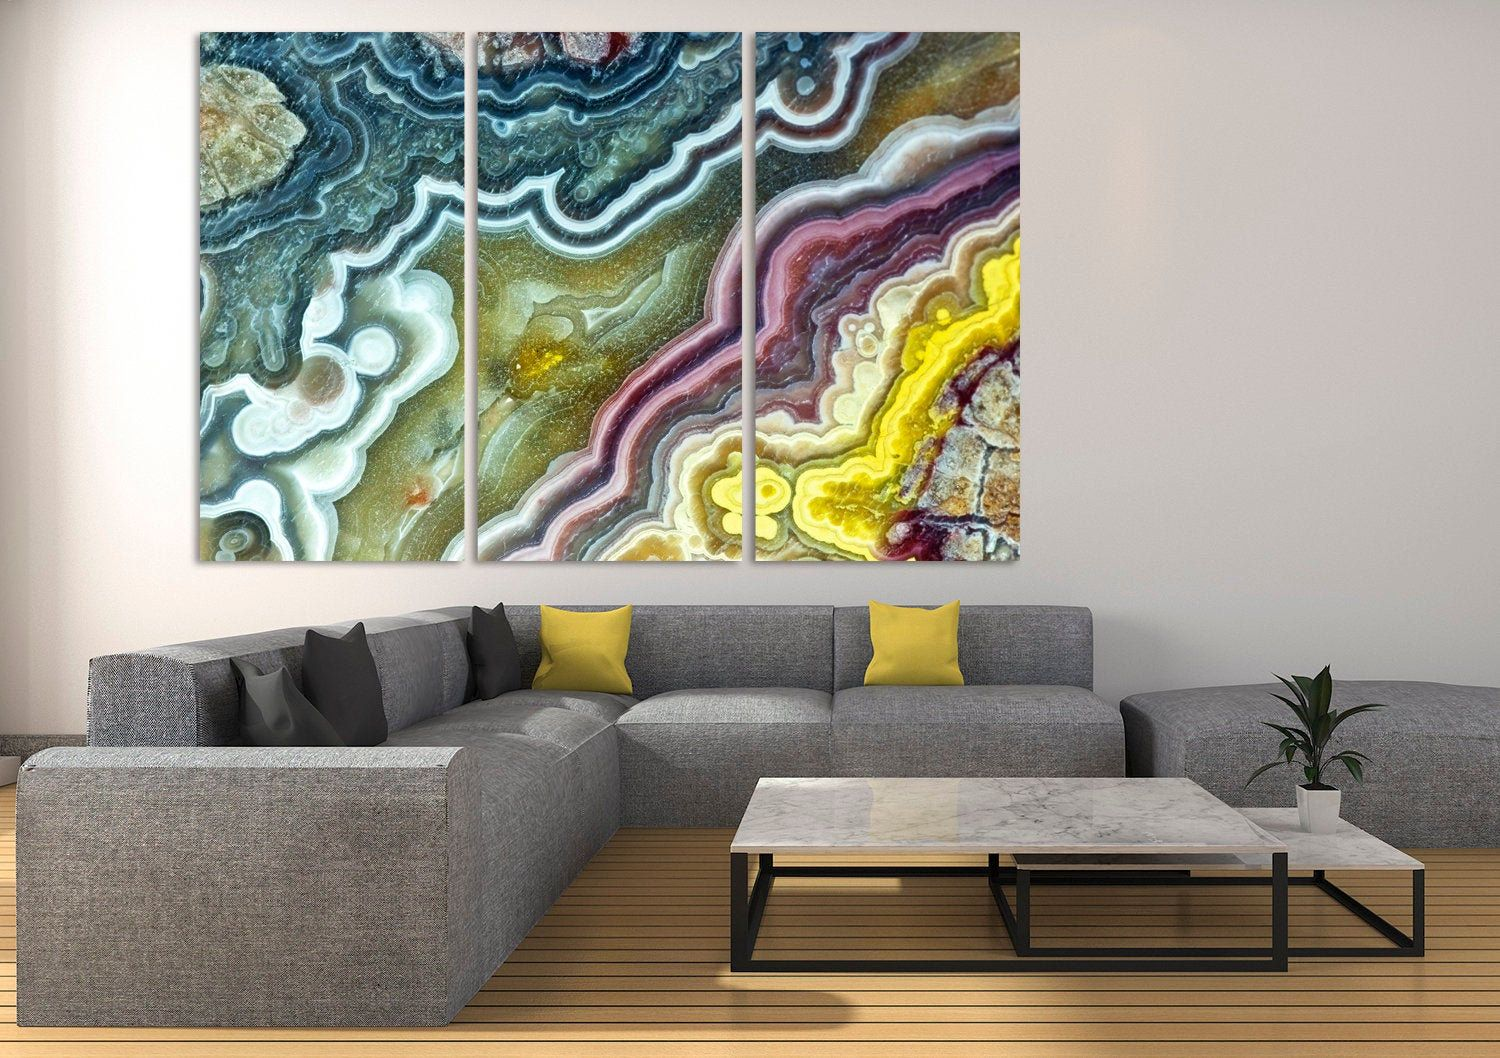 Marble Wall Art Glass Abstract Canvas Print Modern Decor Trend Etsy Large Canvas Wall Art Abstract Decor Glass Wall Art